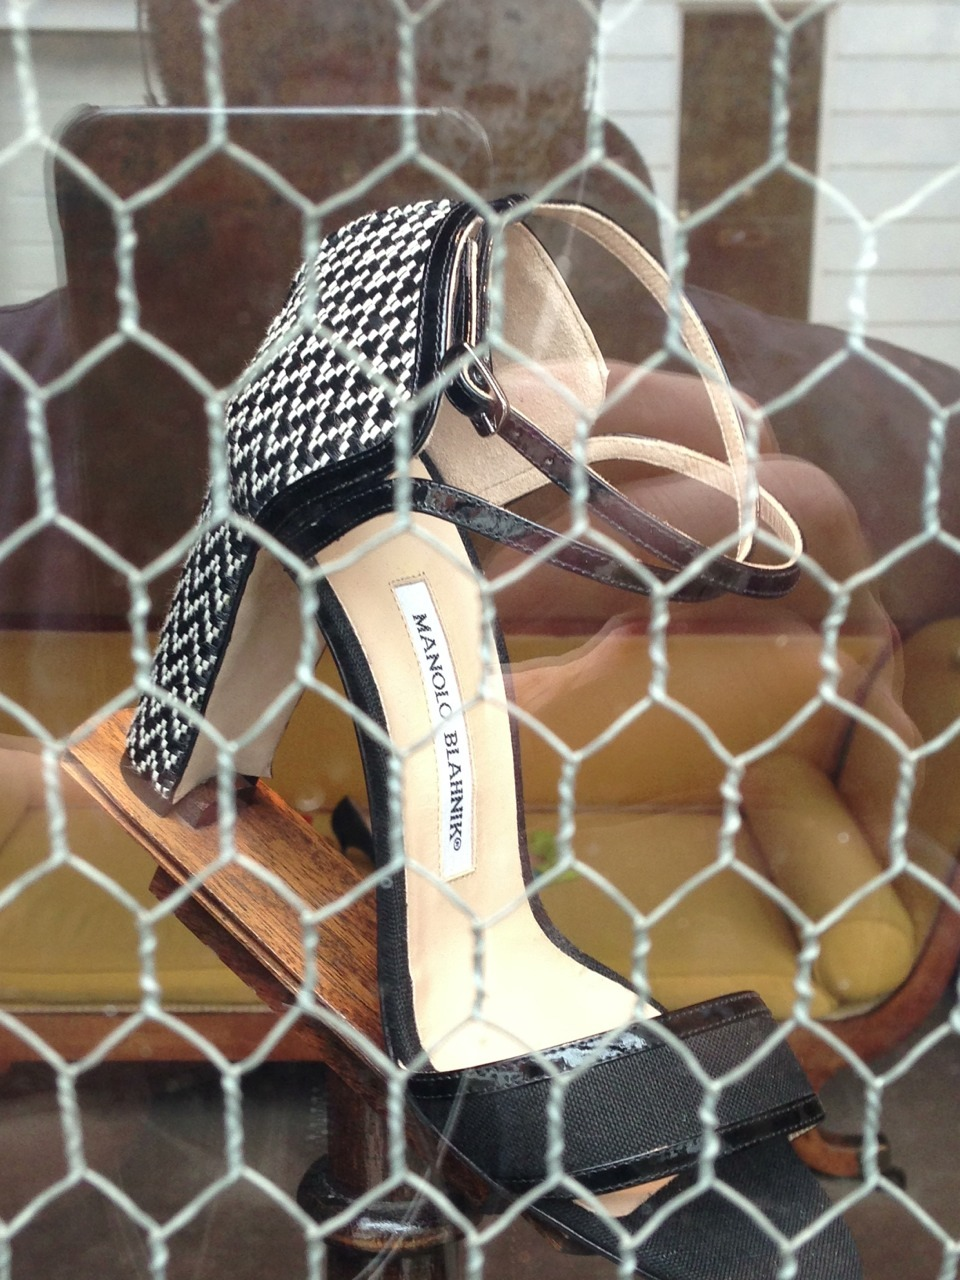 Manolo Blahniks behind chicken wire in London's Chelsea. A metaphor. For something.